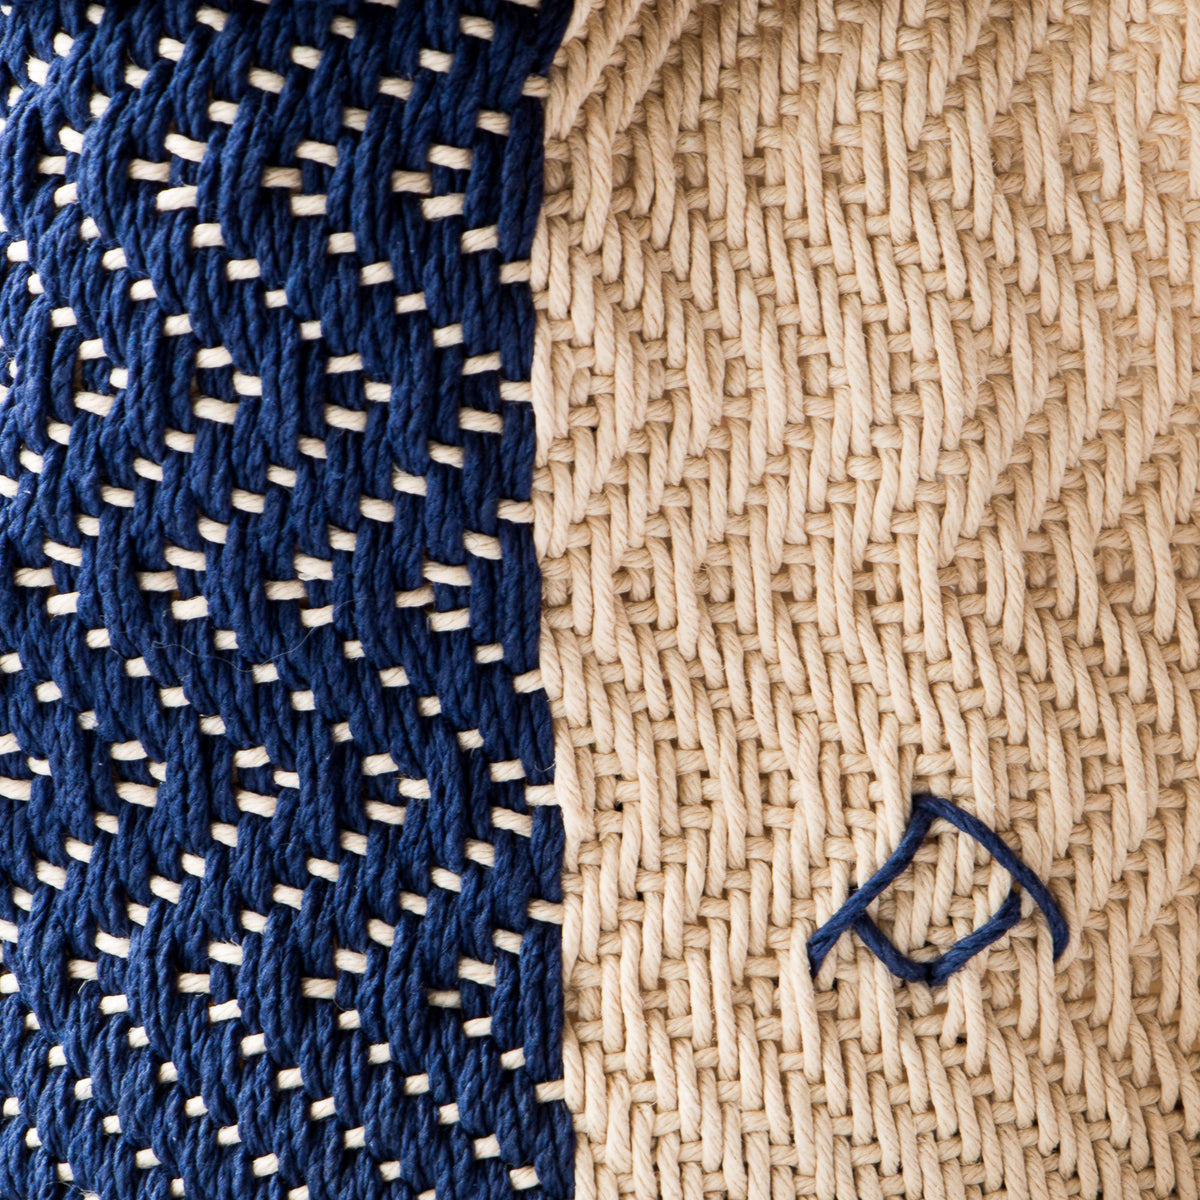 Detail of Marine & Ecru - Hemp Table Basket (Medium) - Handwoven in Montreal, Quebec, Canada - Sold by Chic & Basta